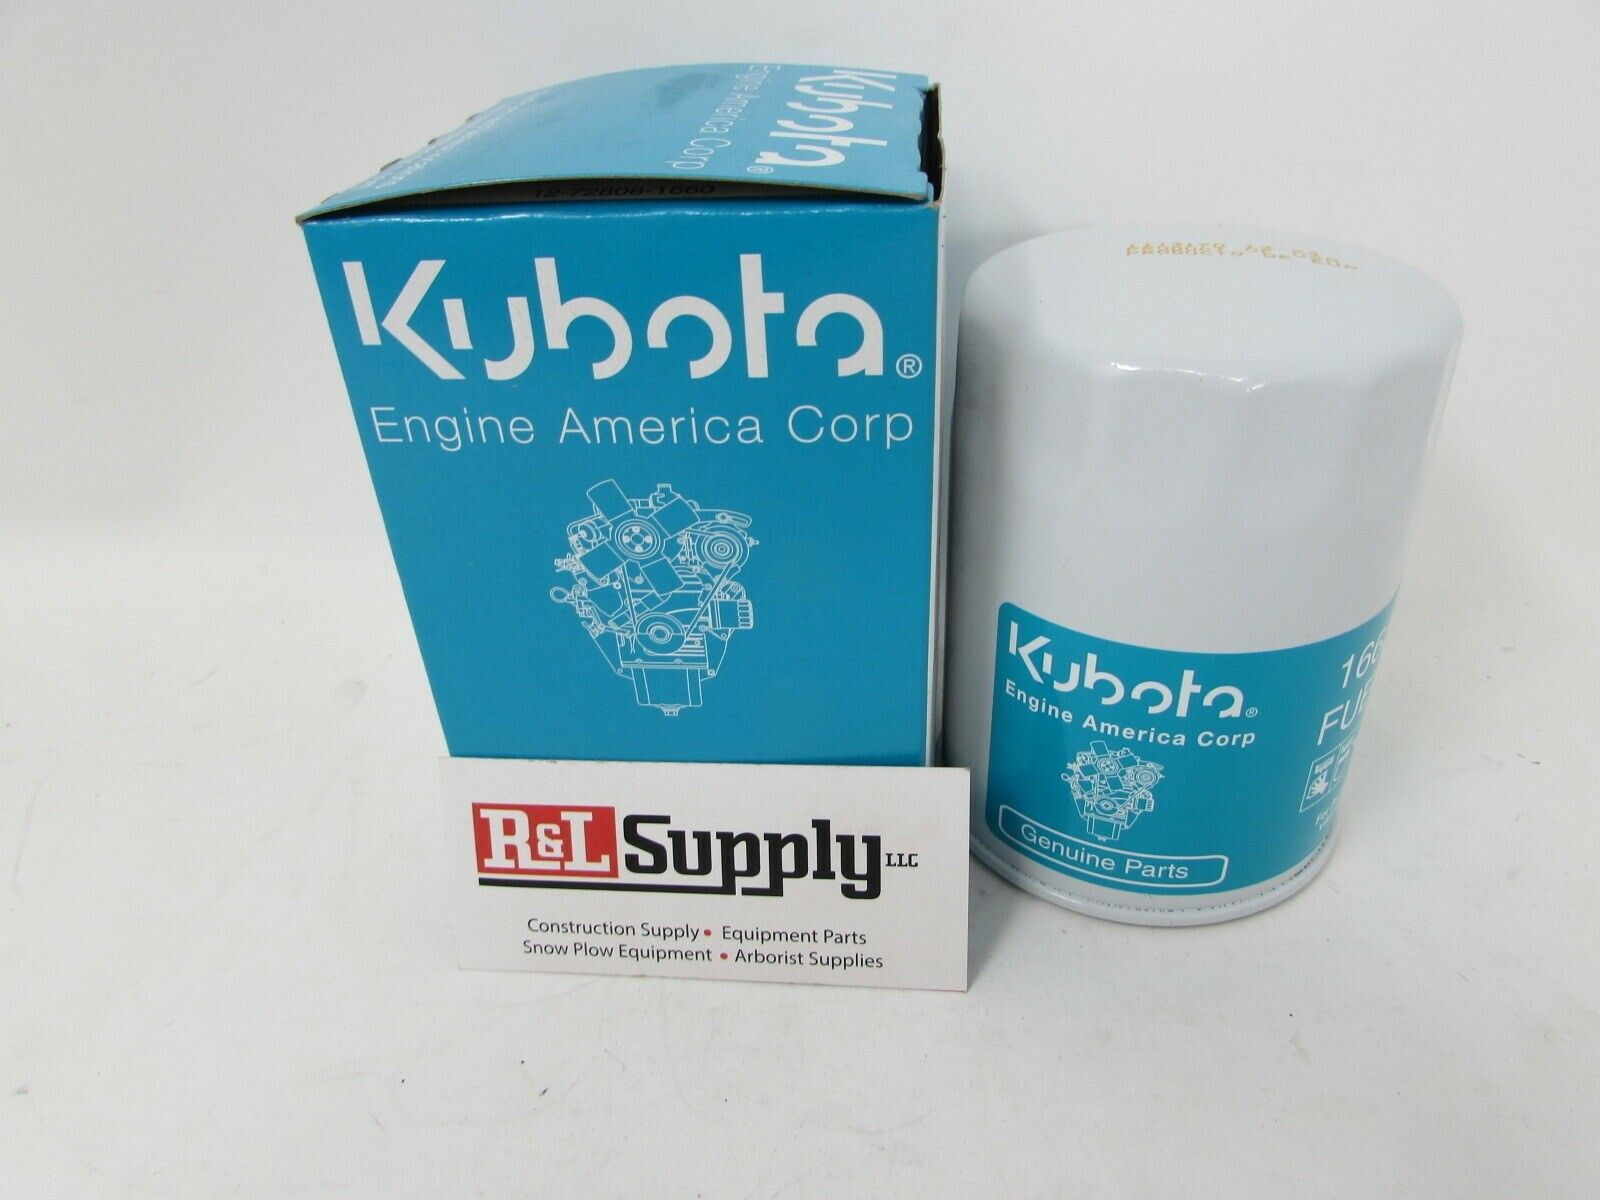 Genuine Kubota Fuel Filter Part 16631 43560 19090 55580 99540 Filters 1 Of 2 See More